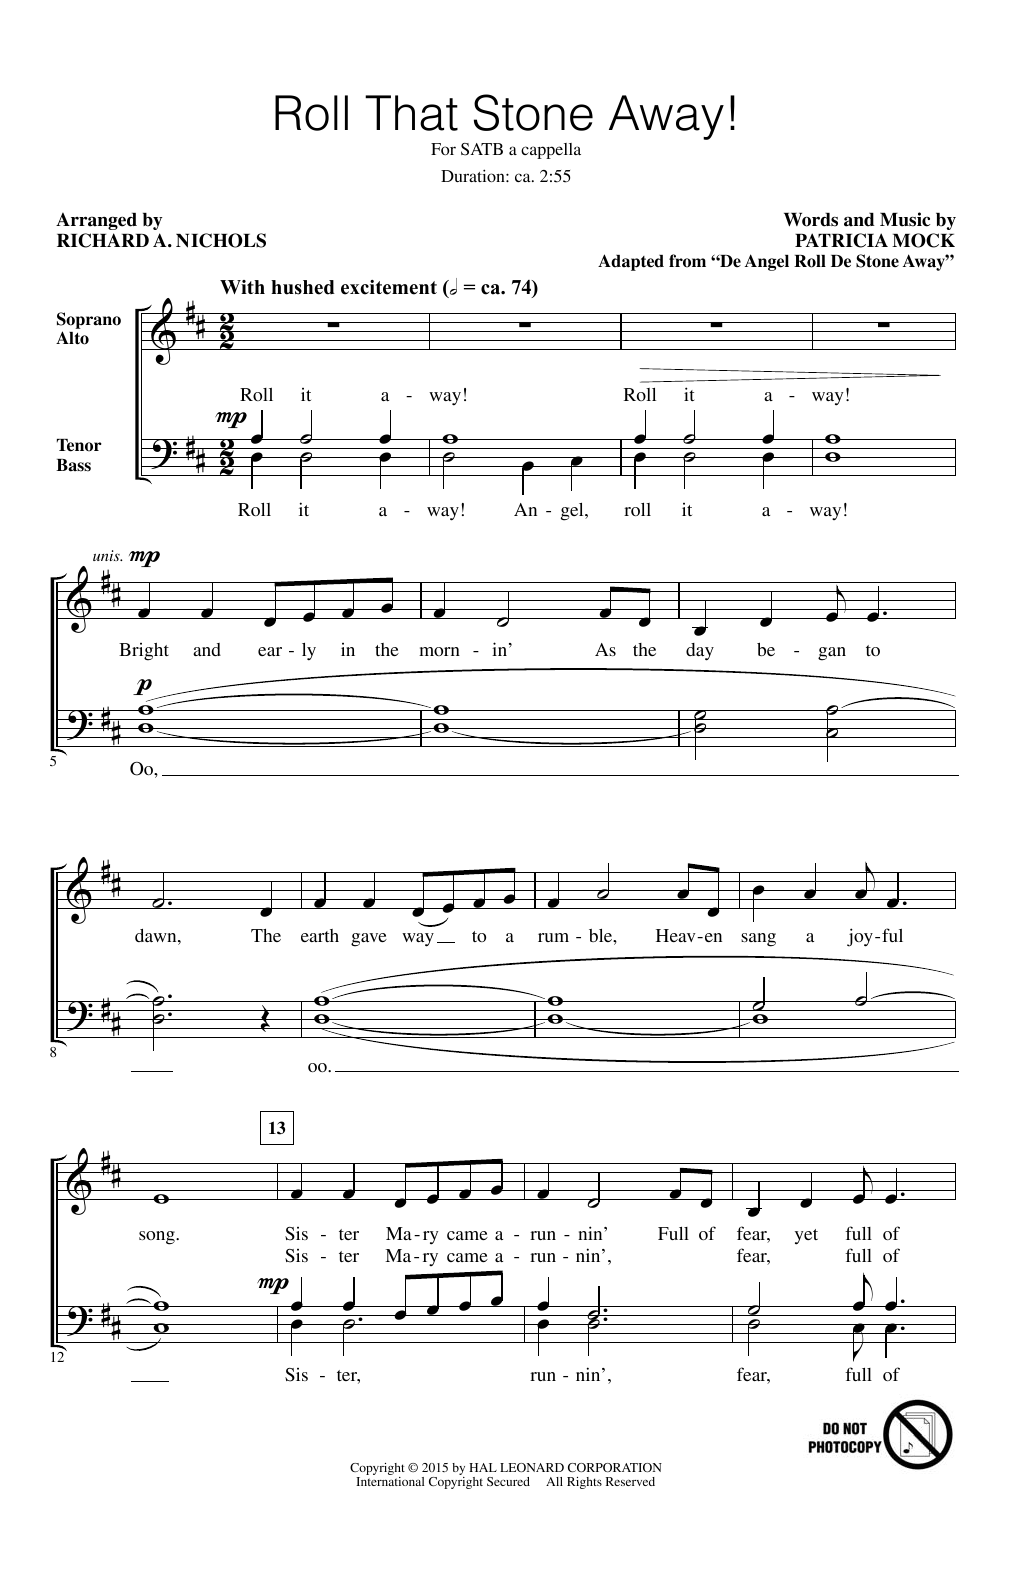 Roll That Stone Away! (arr. Richard Nichols) Sheet Music